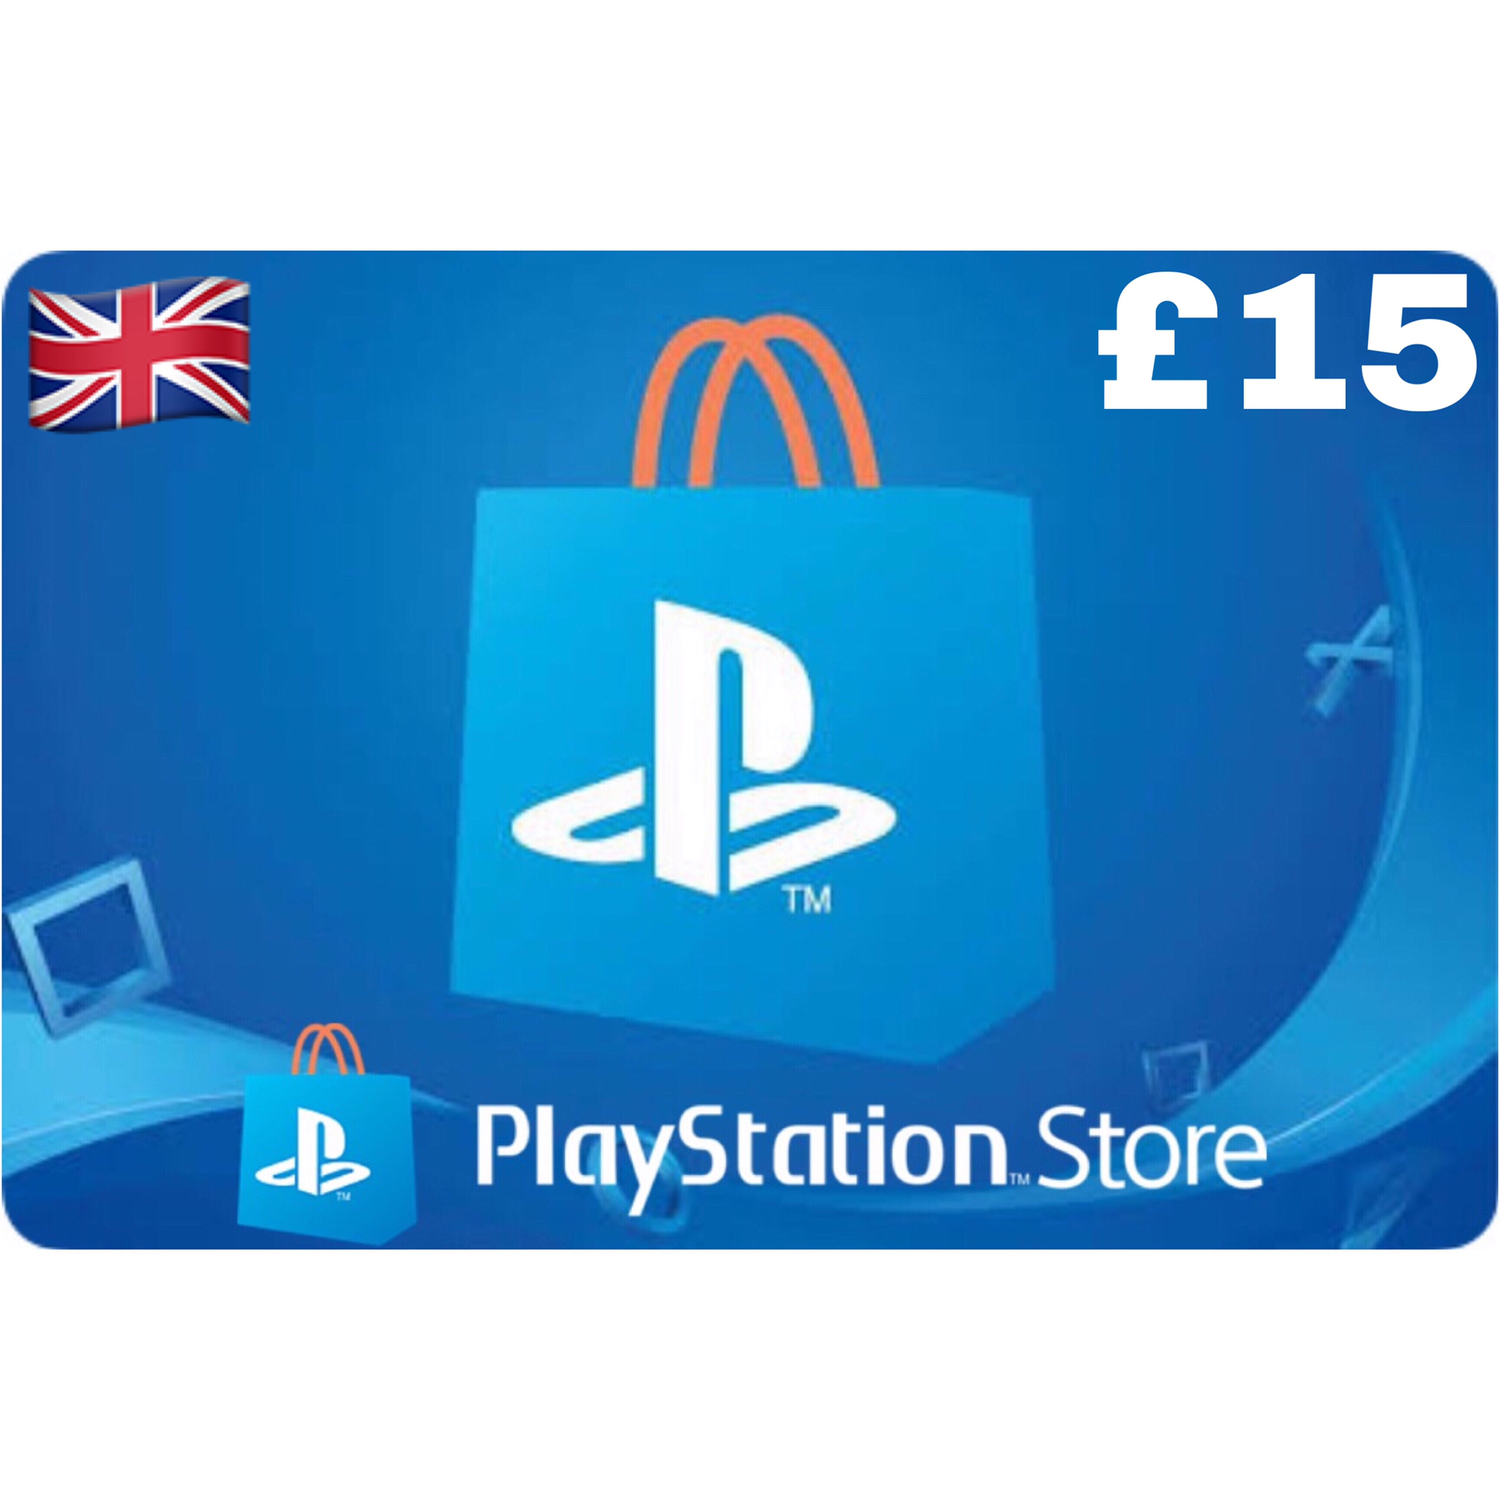 Playstation (PSN Card) UK £15